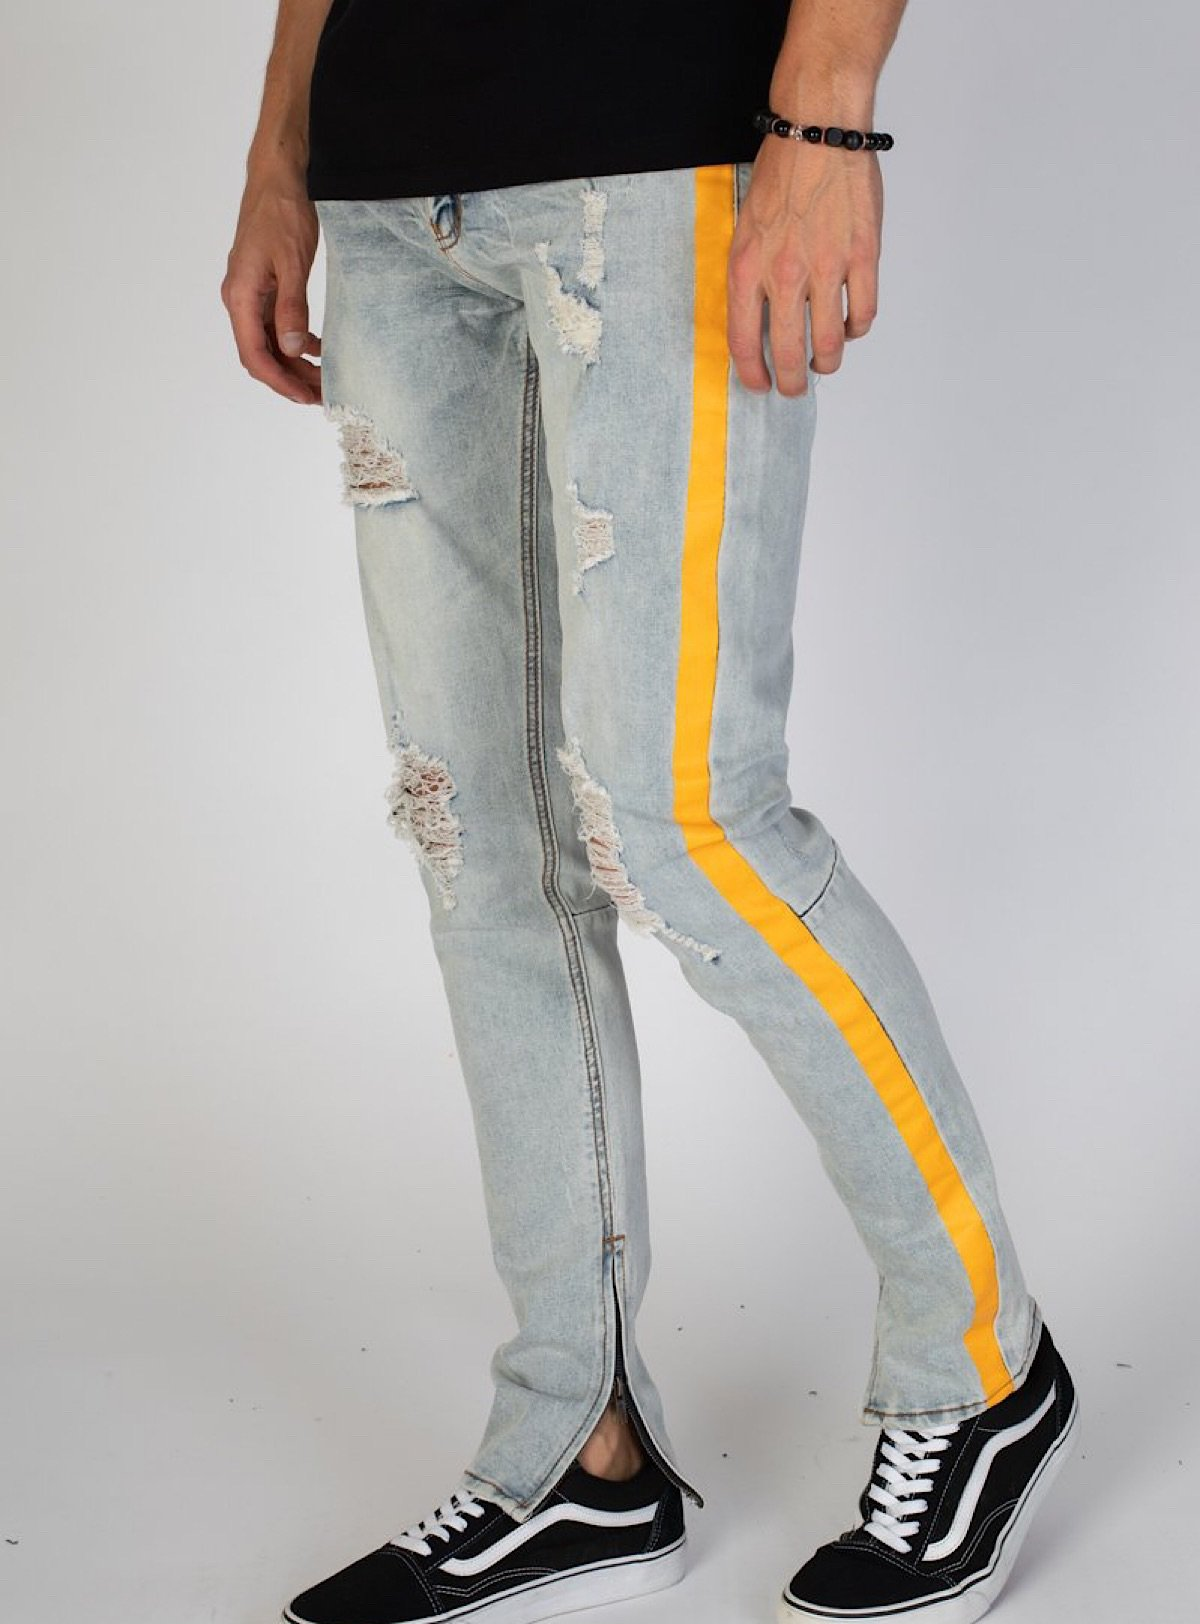 KDNK Jeans - Contrast Side Stripe - Blue and Orange - KND4250